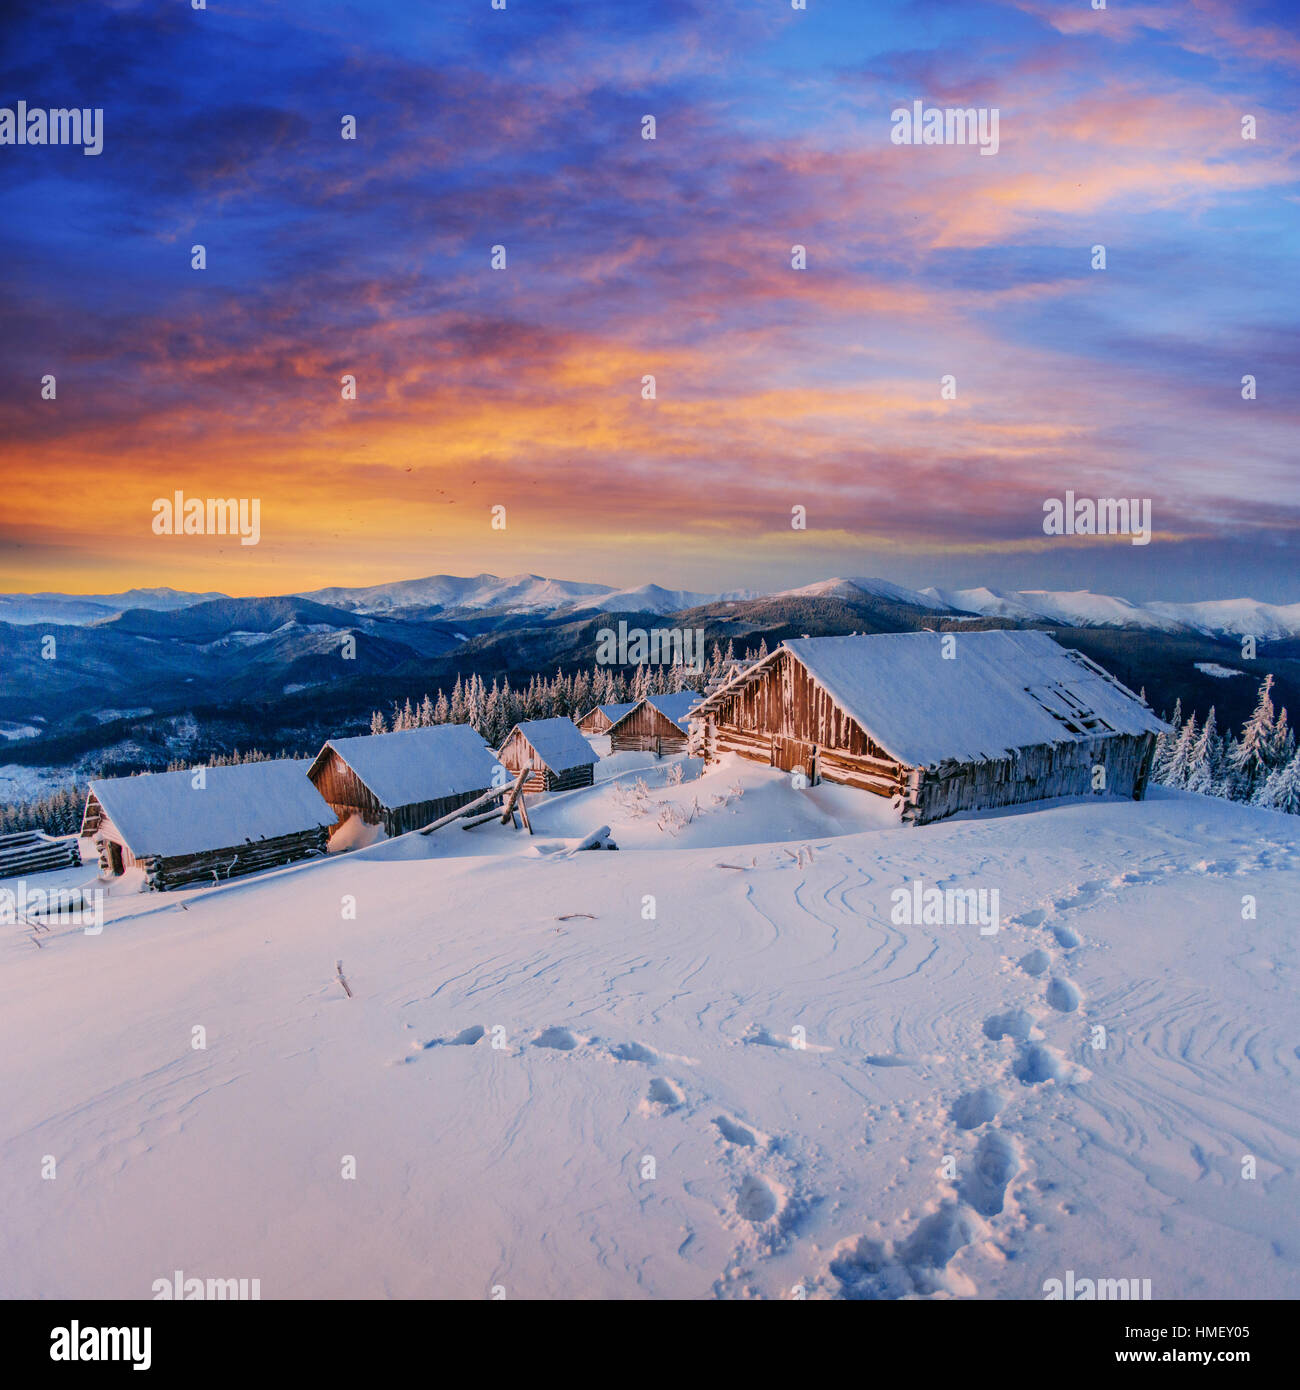 cottage in snowy mountains - Stock Image